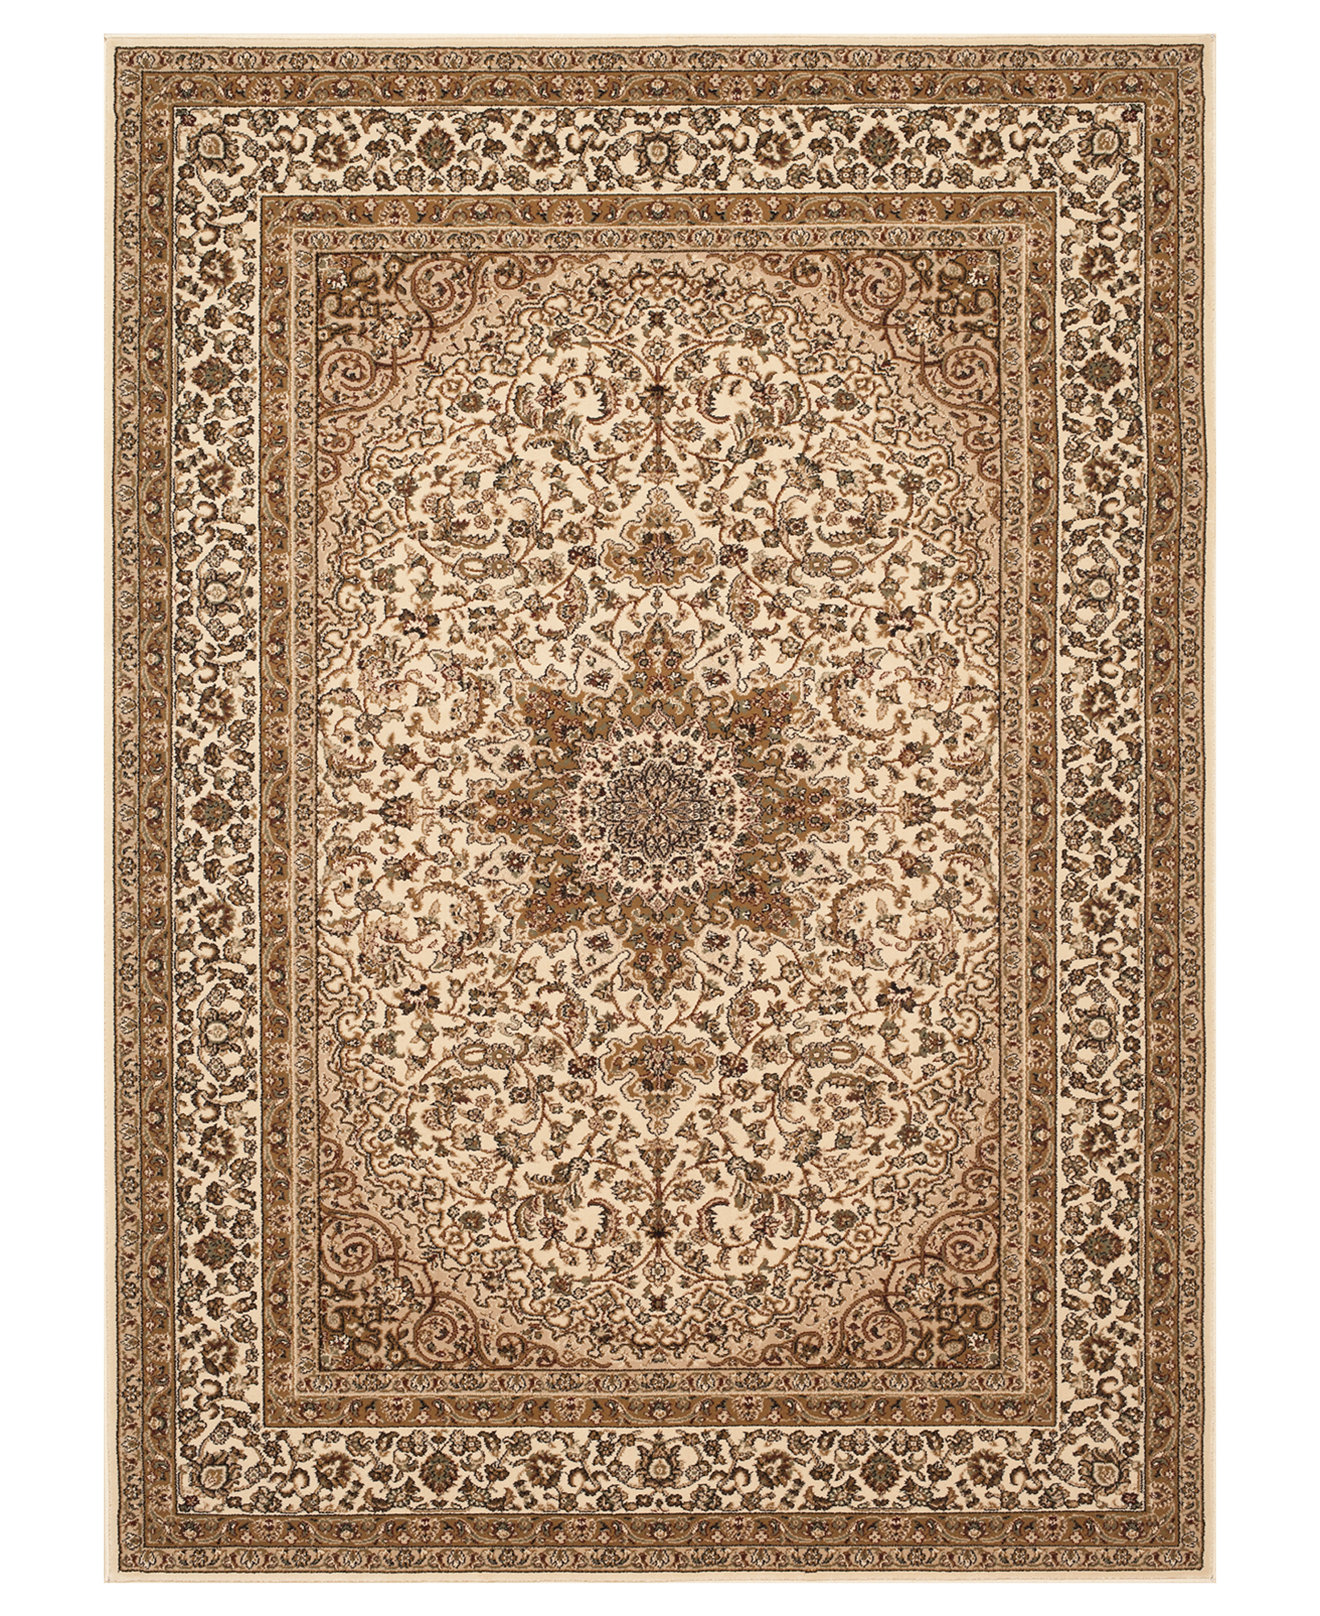 White Area Rug 5x7 | Grey Rug 5x7 | Square Rugs 7x7